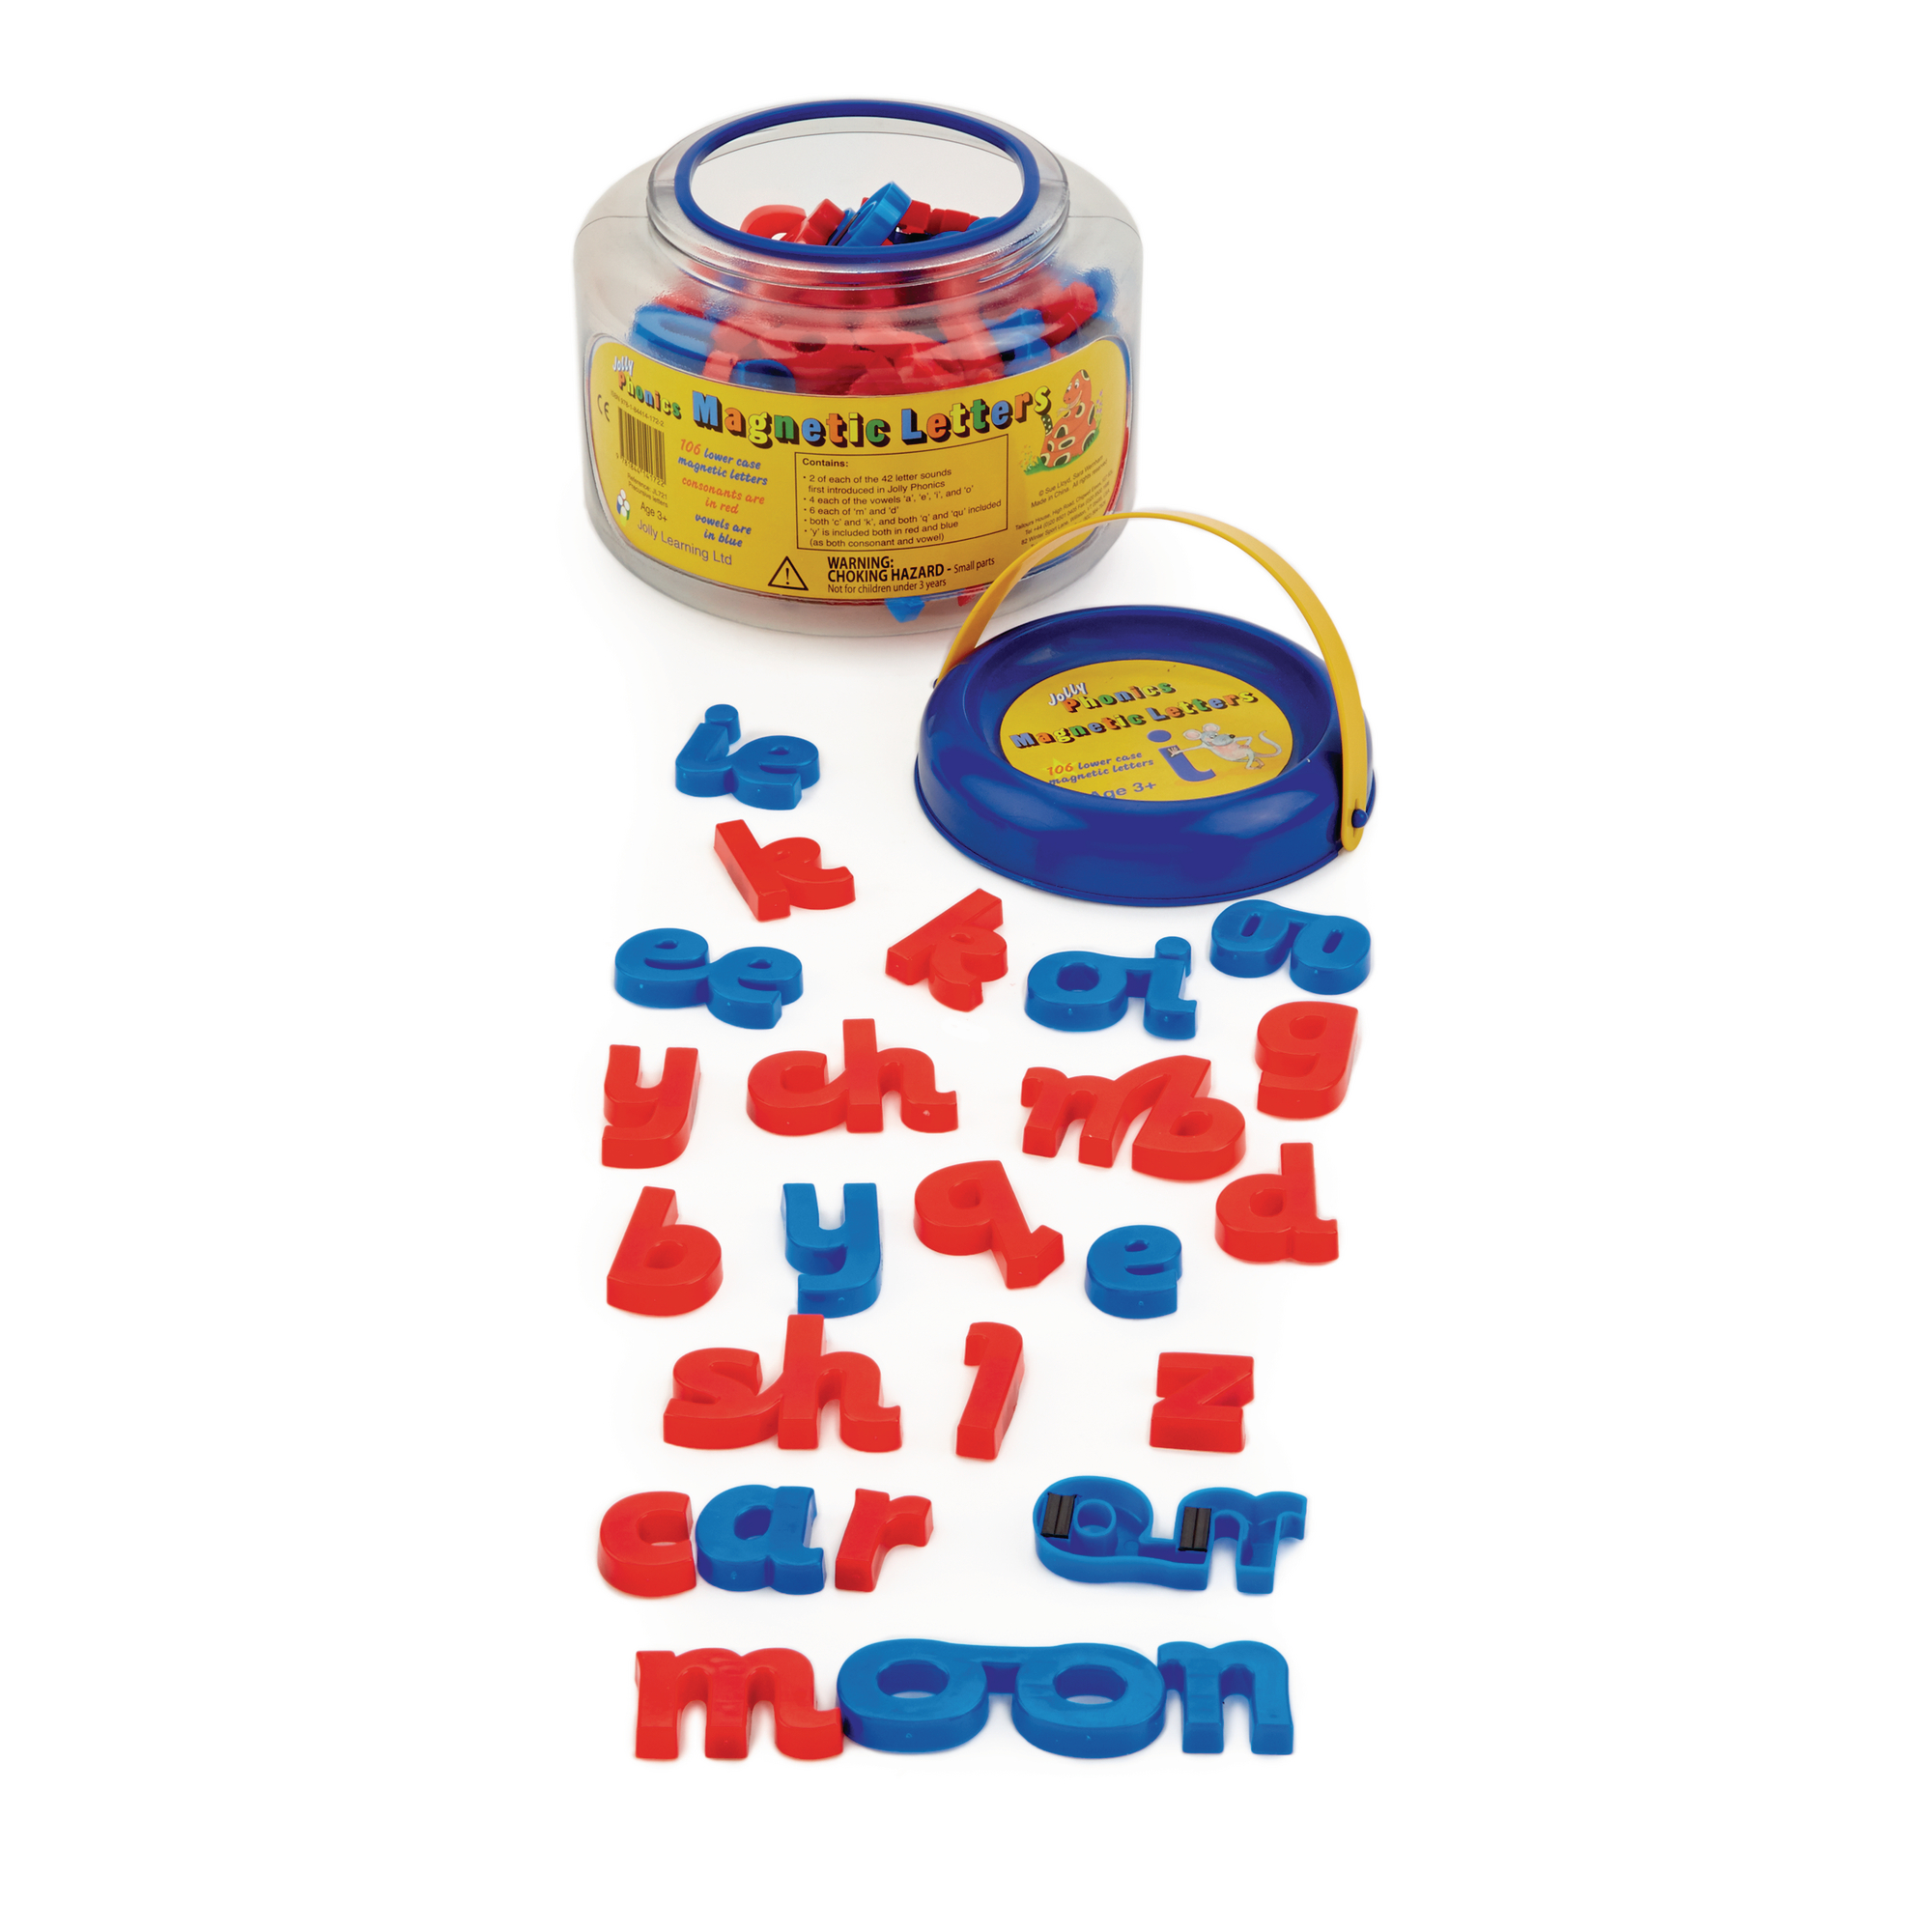 Jolly Phonics Magnetic Letters